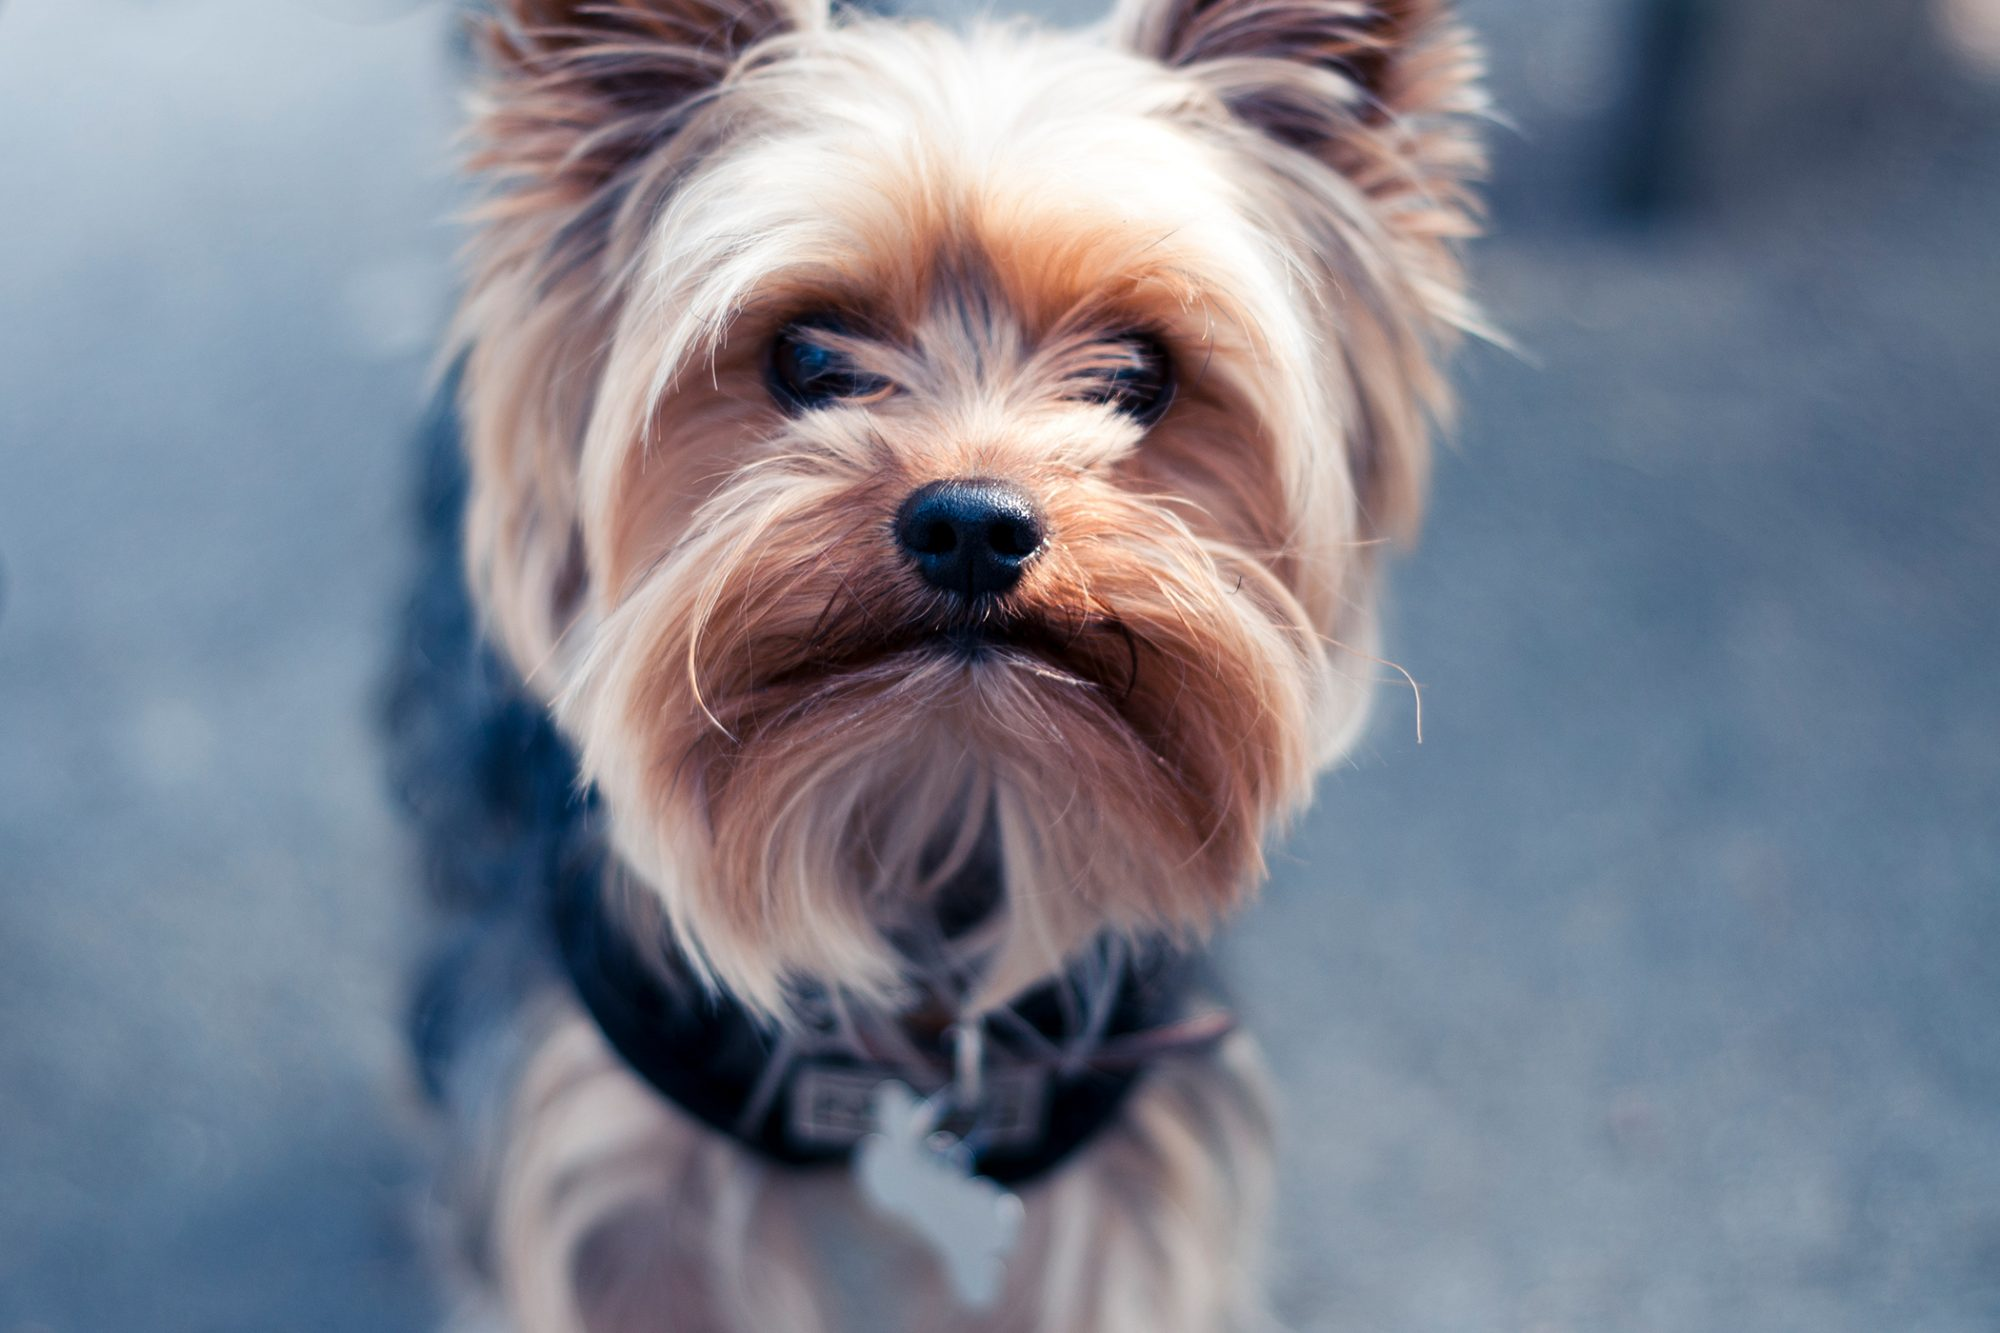 yorkshire terrier with black collar close-up